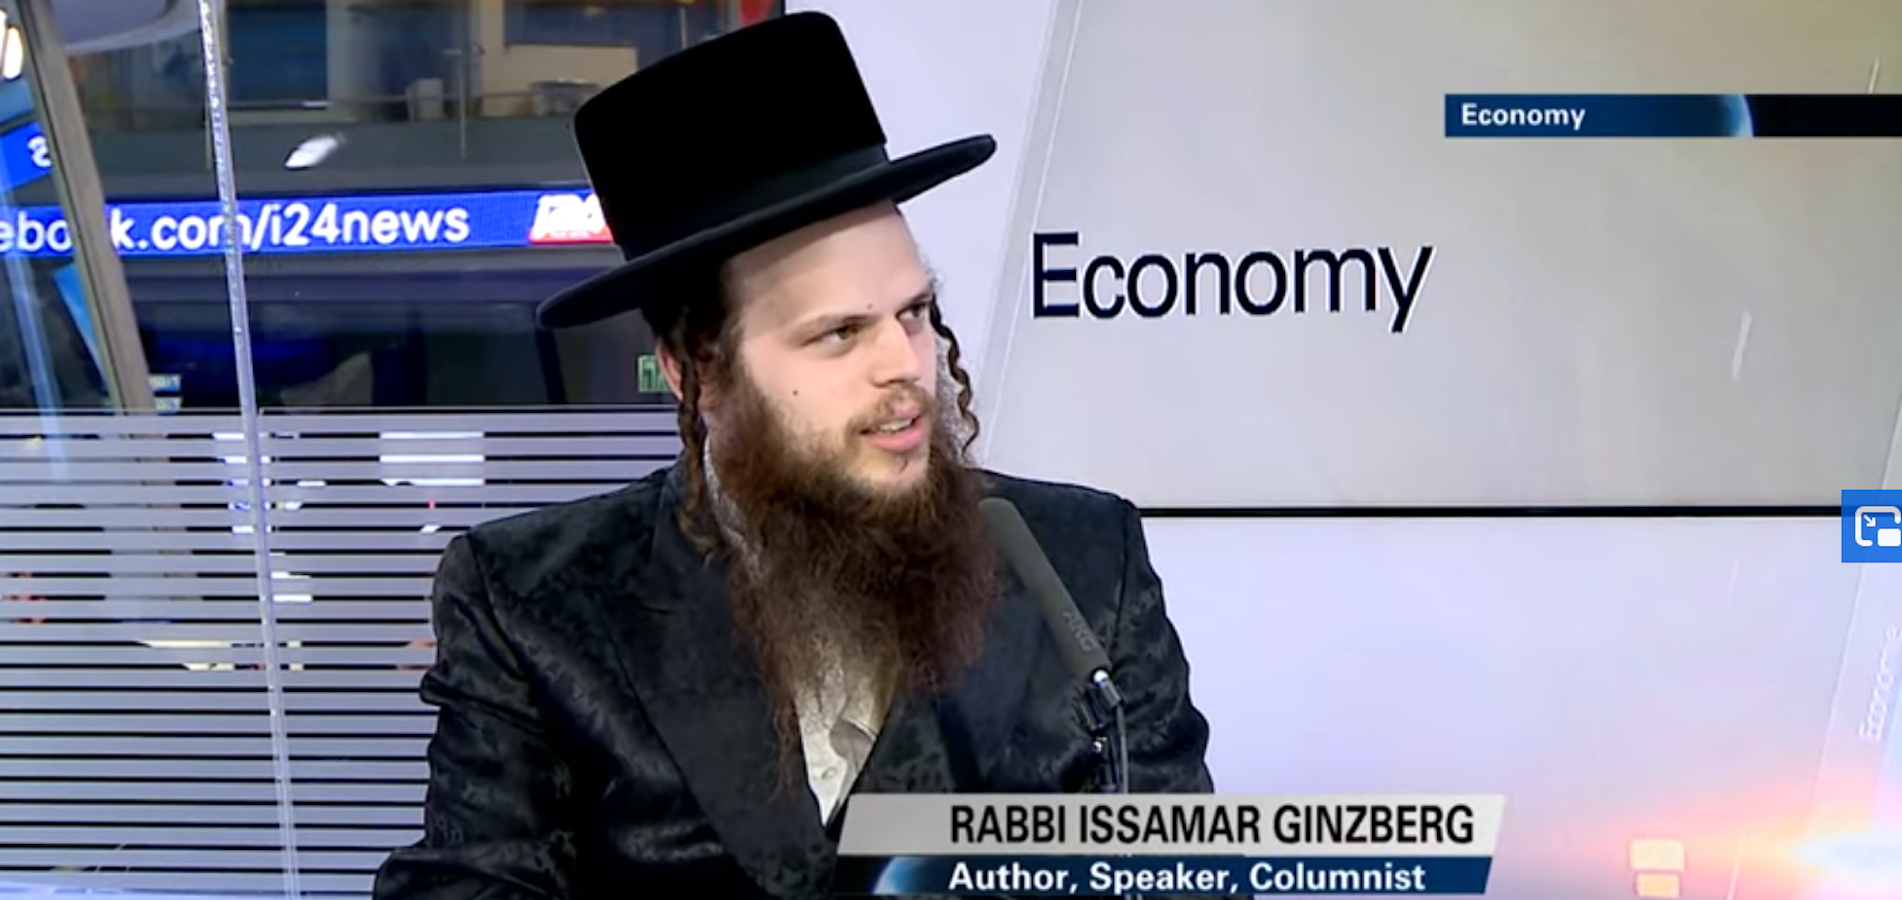 This Hasidic Rabbi Was An Inc. Top 10 Entrepreneur Of The Year